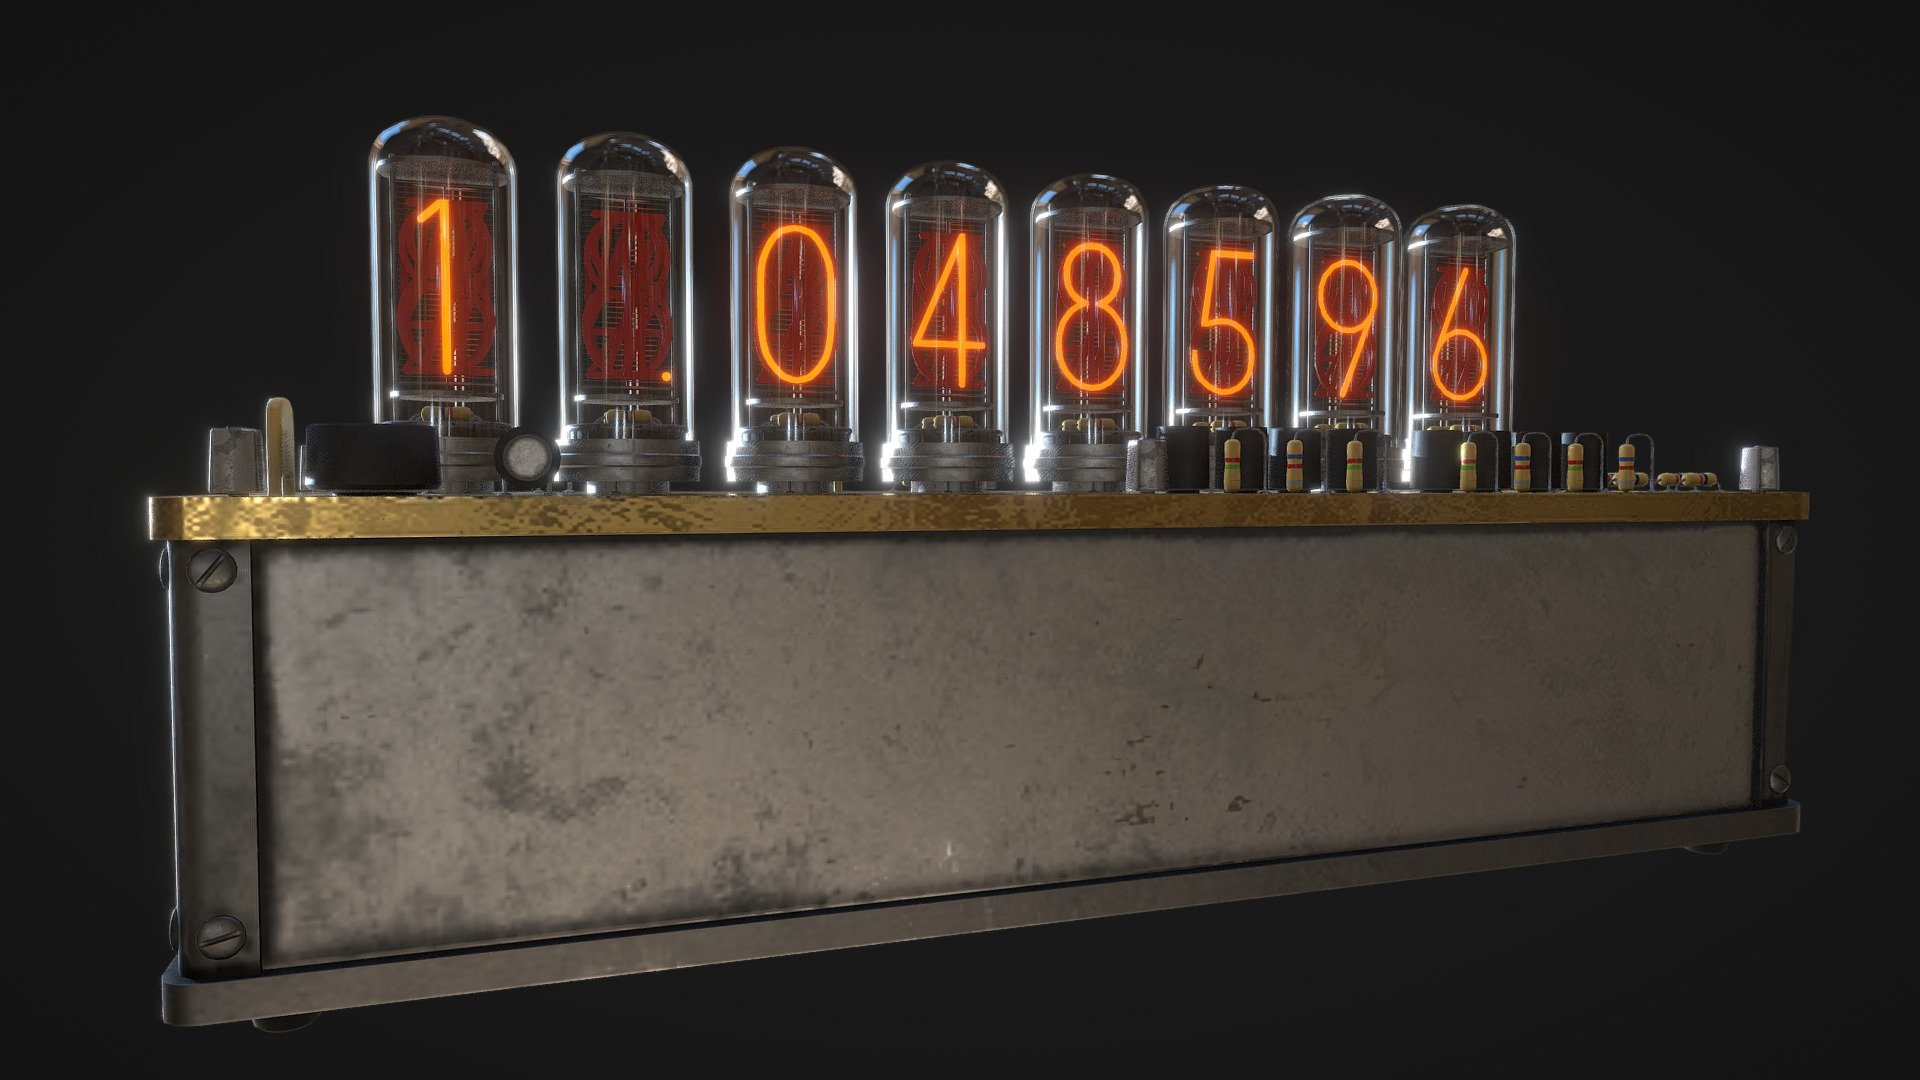 Steins Gate Divergence Meter Download Free 3d Model By G Salmon G Salmon 65646a3 Sketchfab